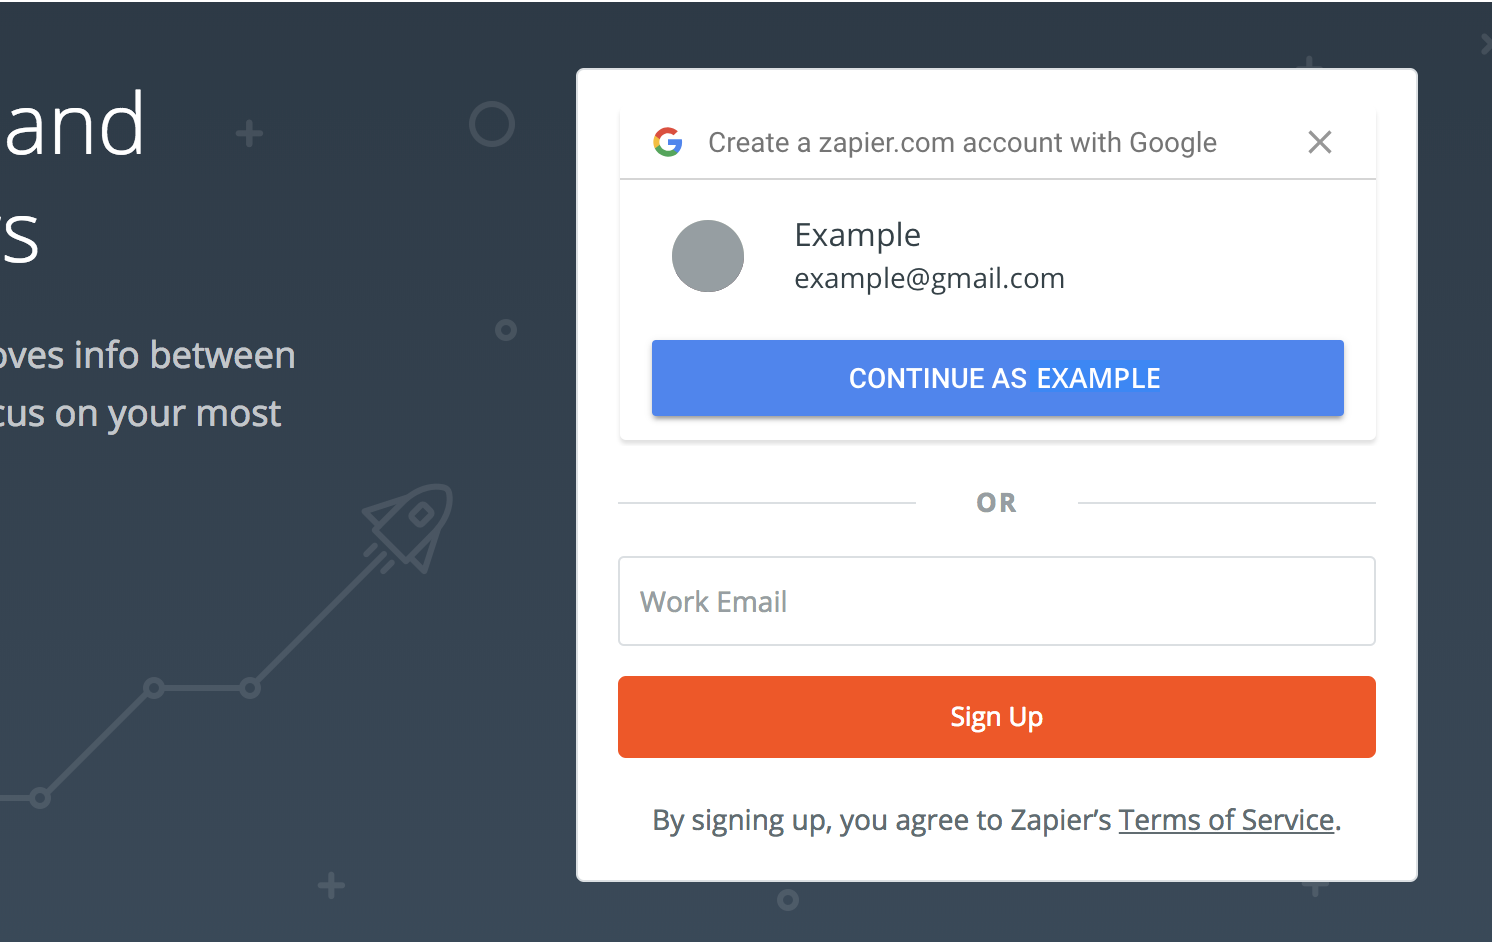 Zapier homepage with Google One Tap showing example@gmail.com account